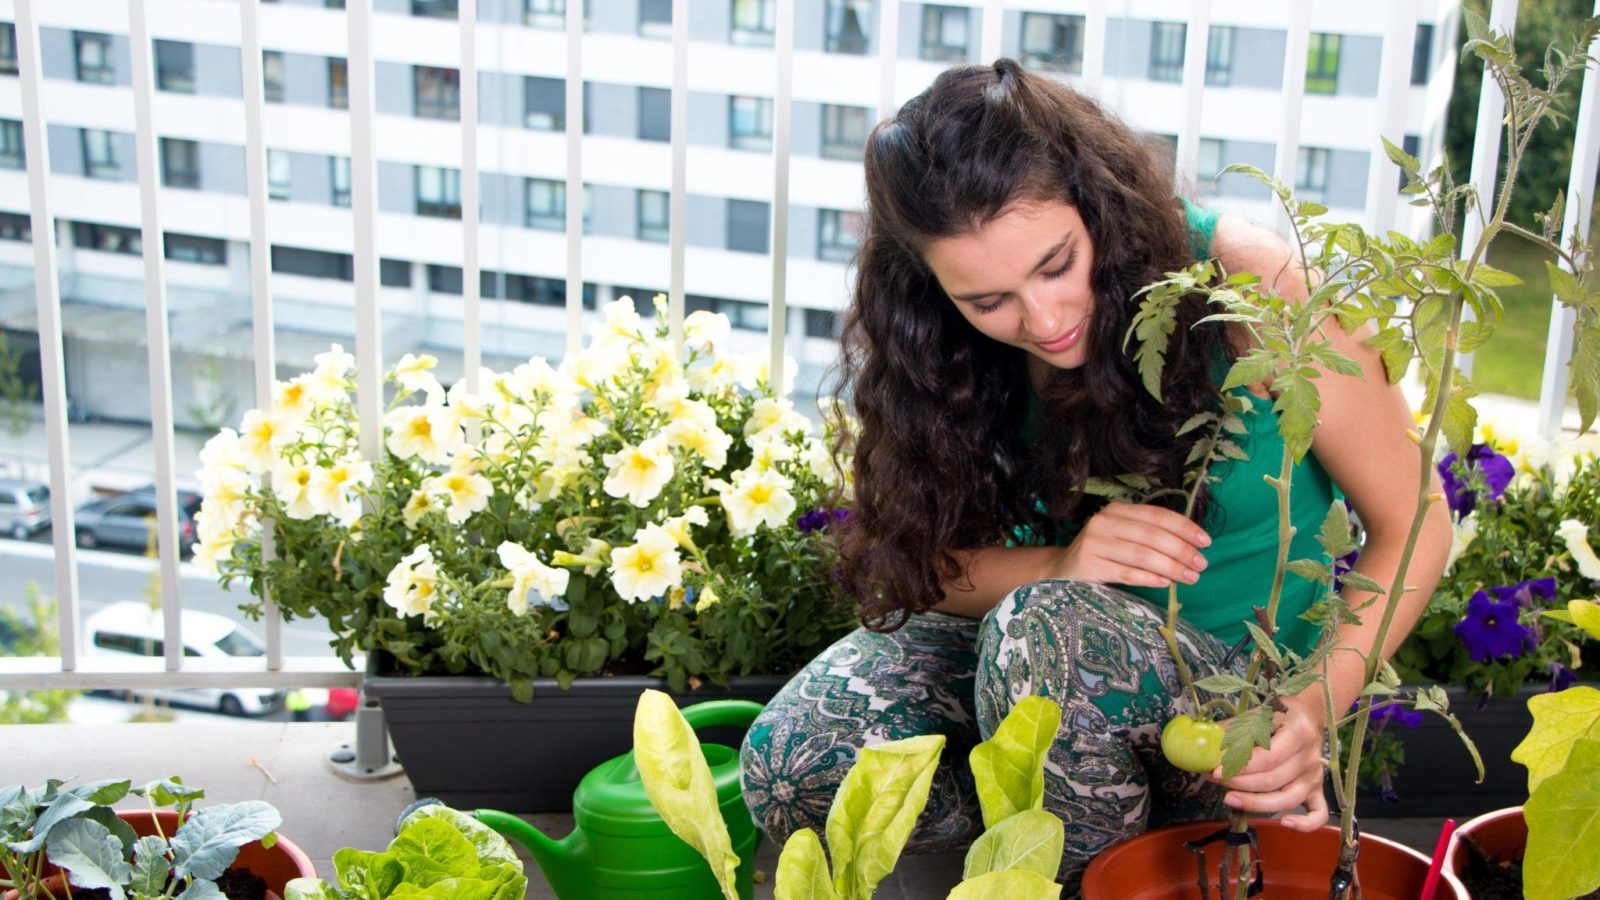 Woman growing produce and flowers